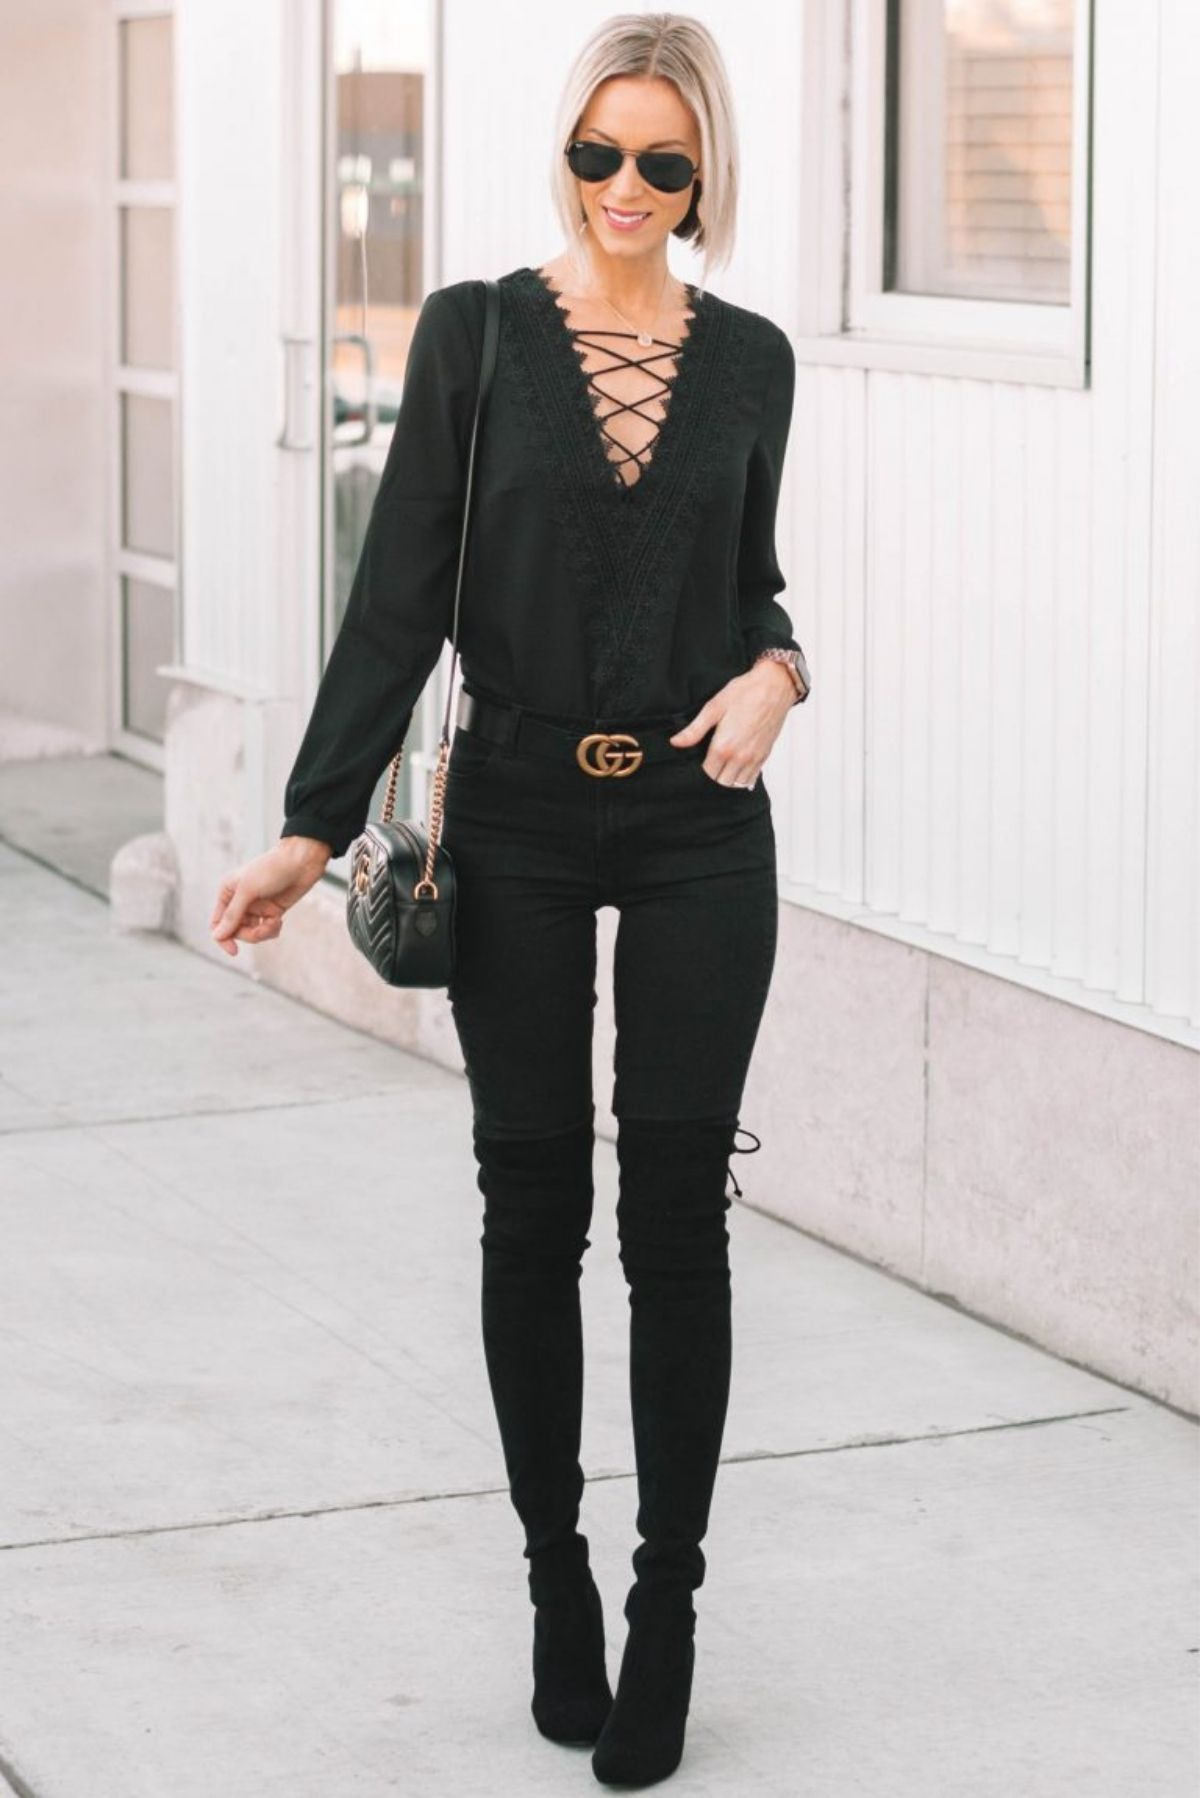 style black jeans by wearing all black